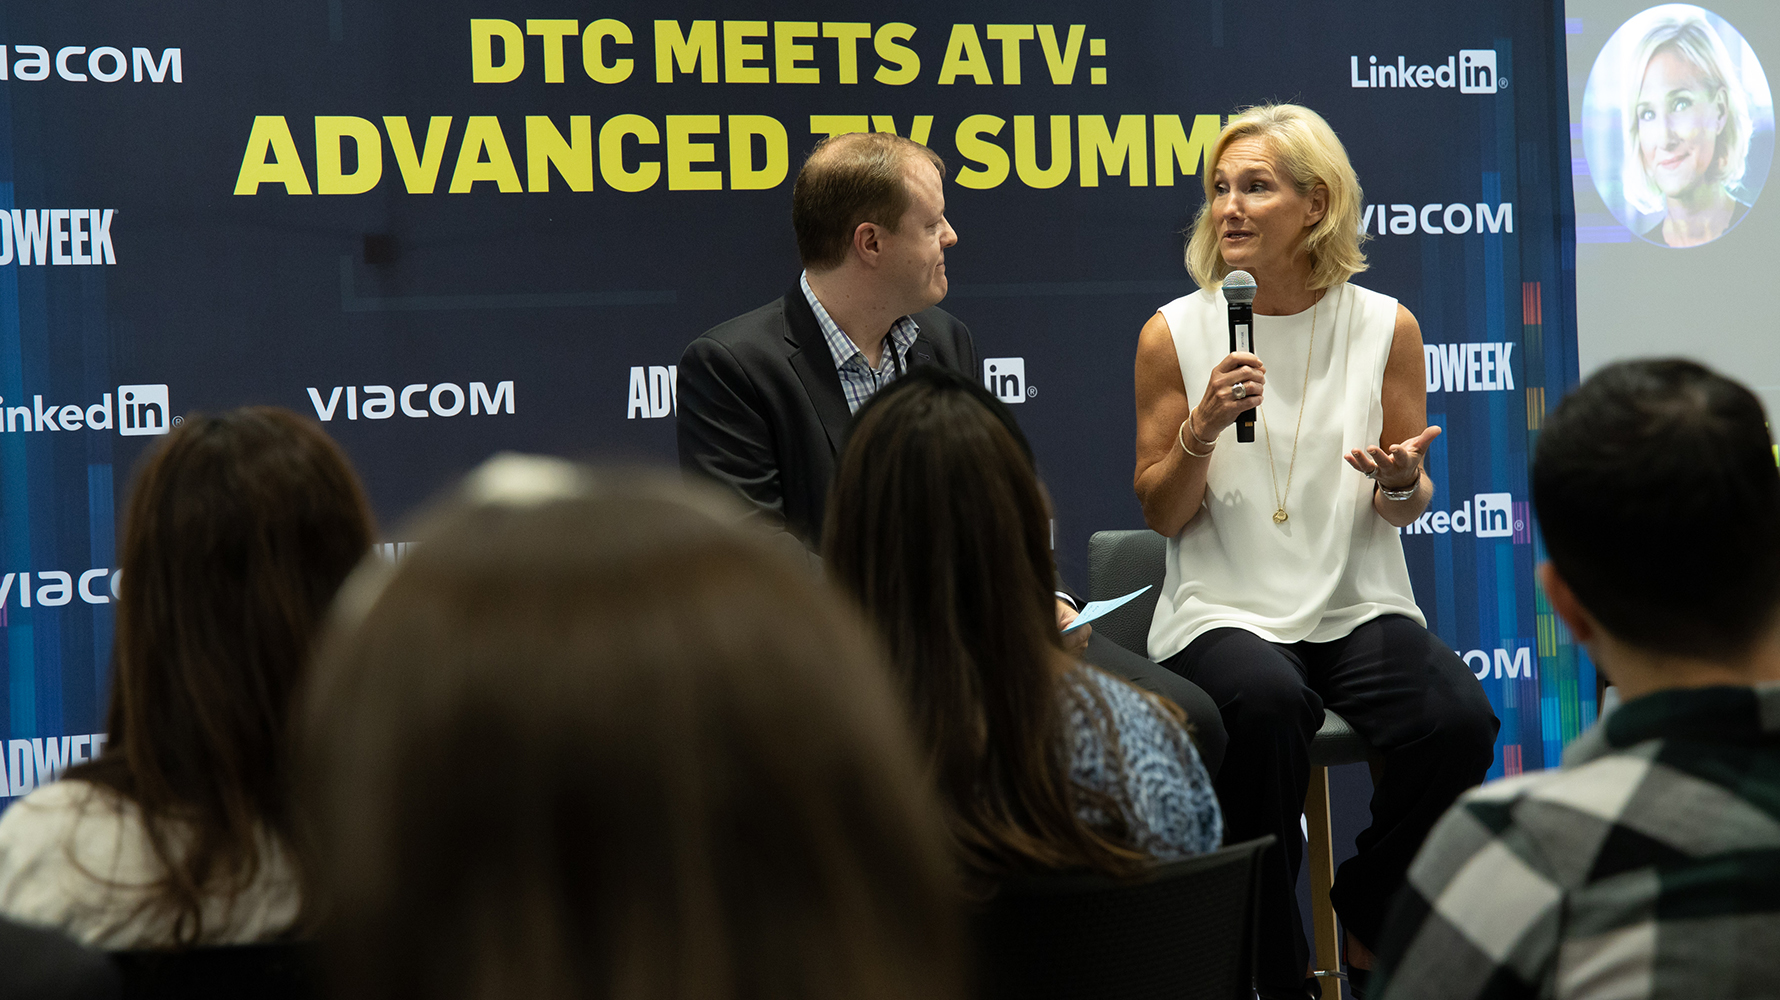 Jason Lynch, TV and media editor, Adweek, speaks with Karen Phillips, evp, ad solutions, Viacom.